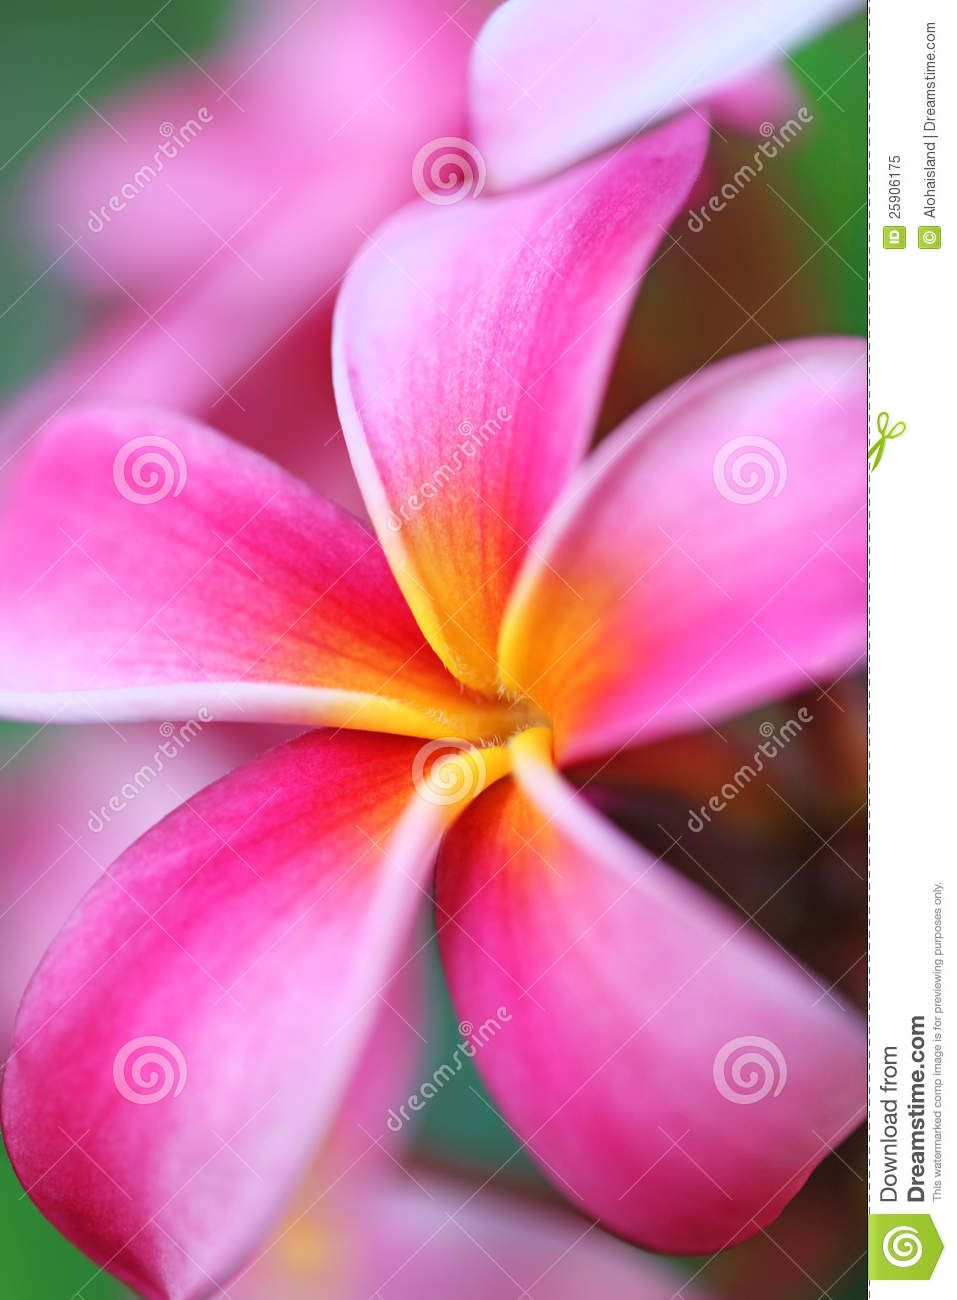 Pink plumeria flower hawaii plumeria flowers pinterest flowers pink plumeria flower hawaii izmirmasajfo Choice Image